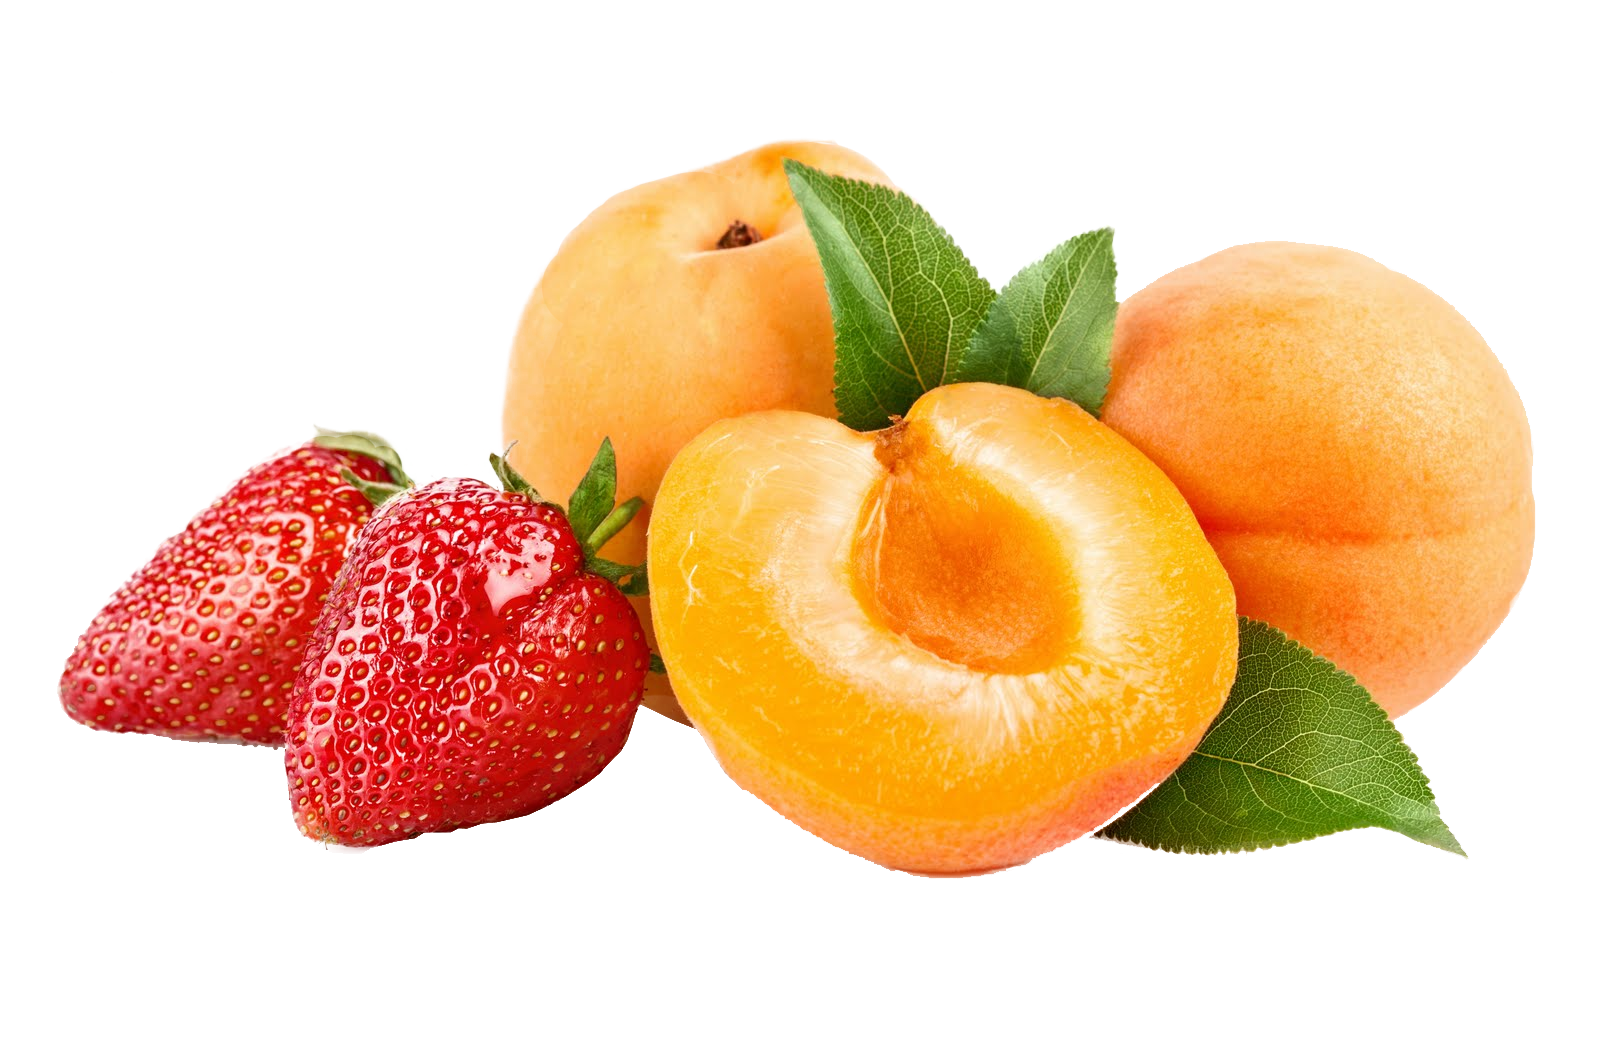 Download Fruit PNG HD.